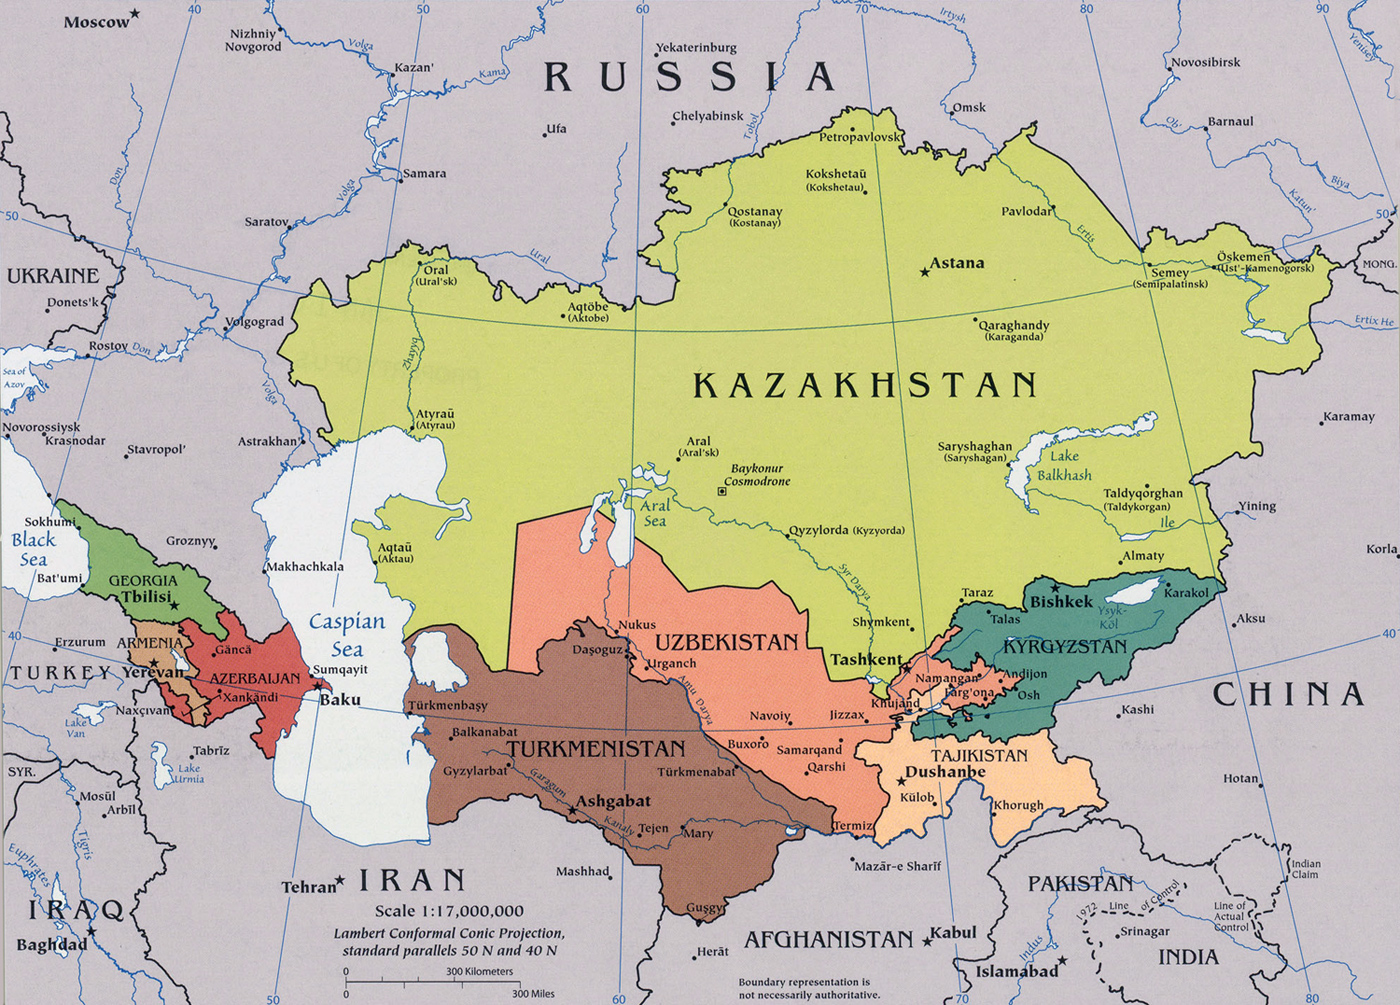 Caucasus and central asia map the caucasus and central asia 2009 source us central intelligence agency europe maps gumiabroncs